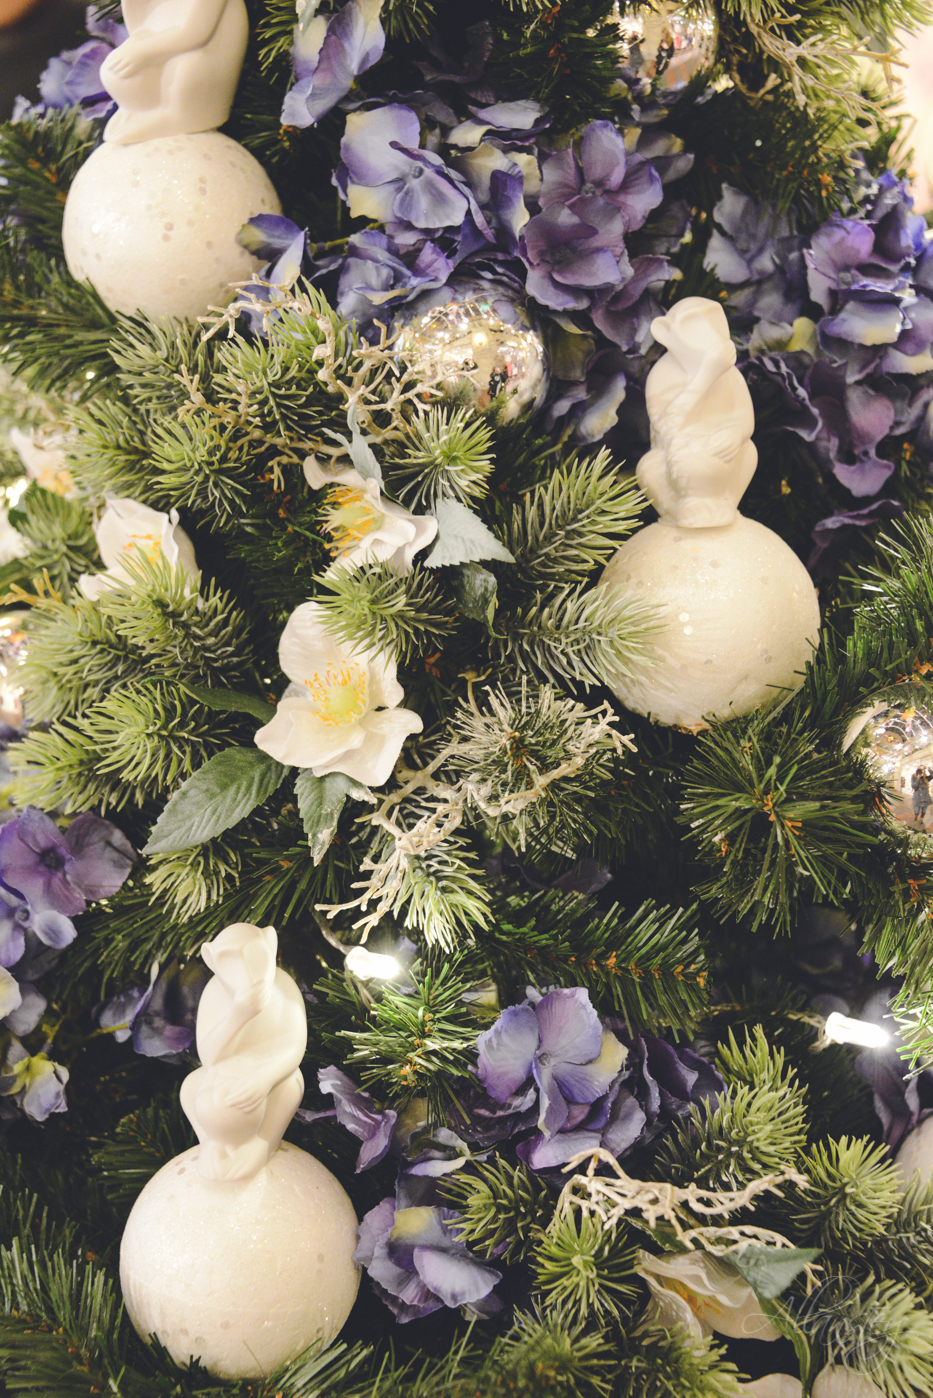 Floral white cream, purple violet faux flowers and monkeys Christmas tree decorations